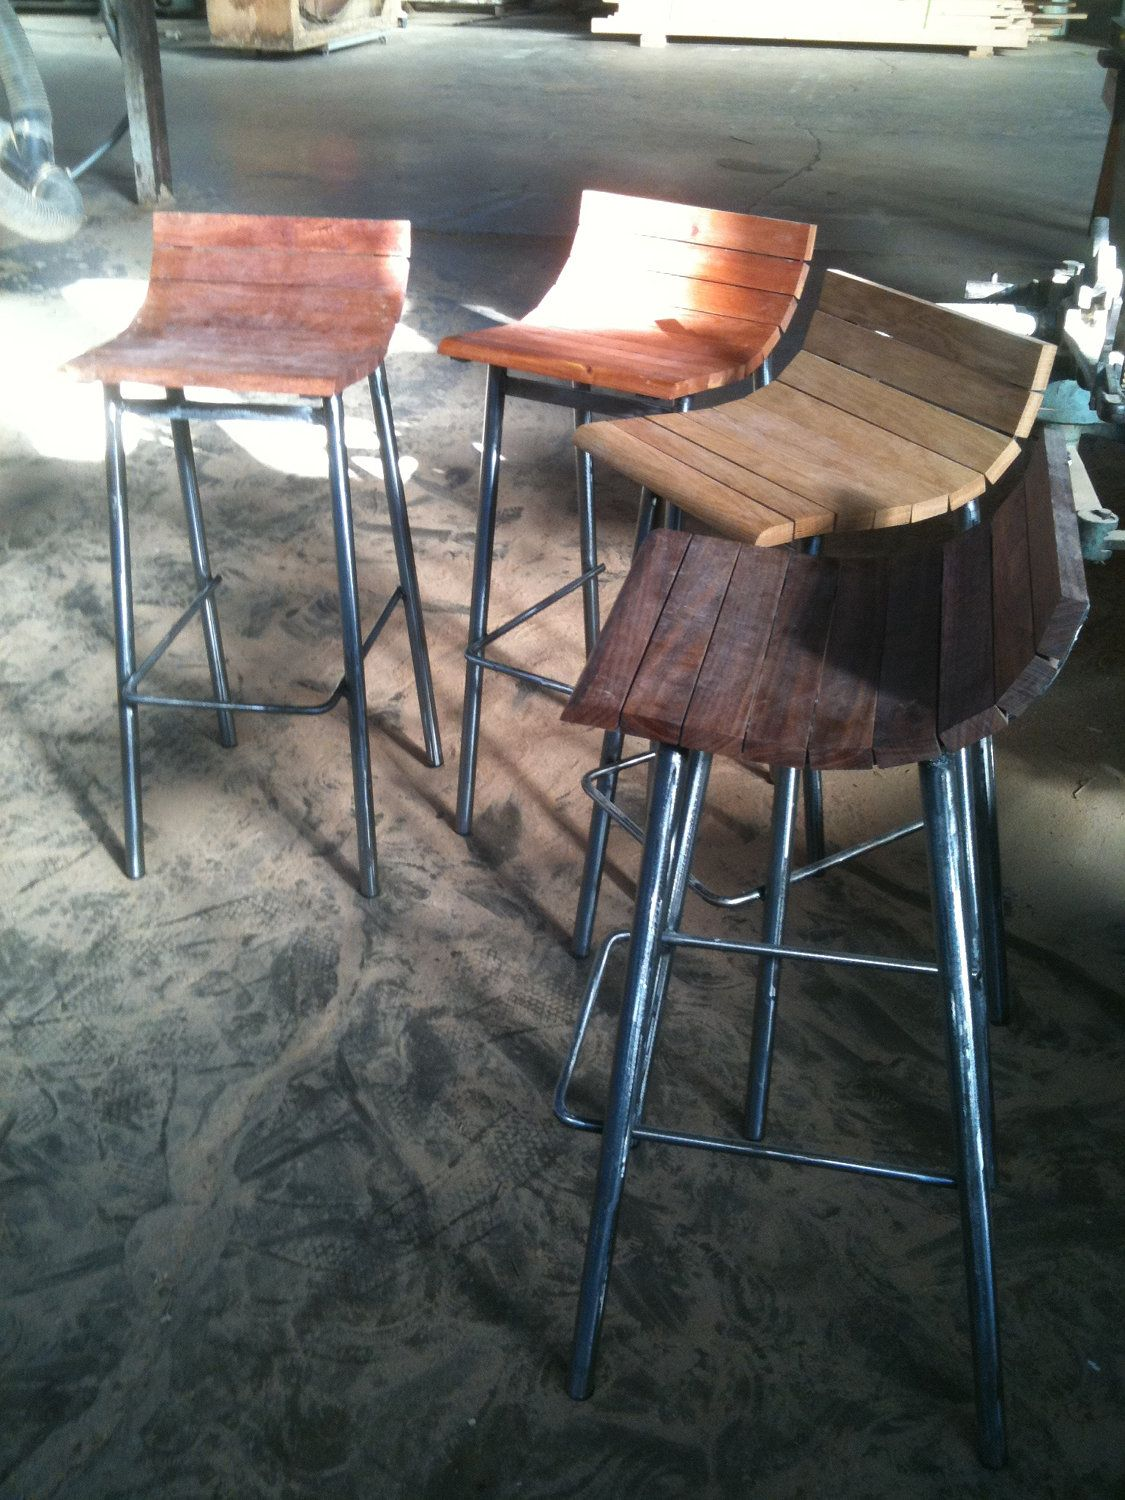 Bancos Muebles Bar Stool Recycled Muebles Rejas Bancos